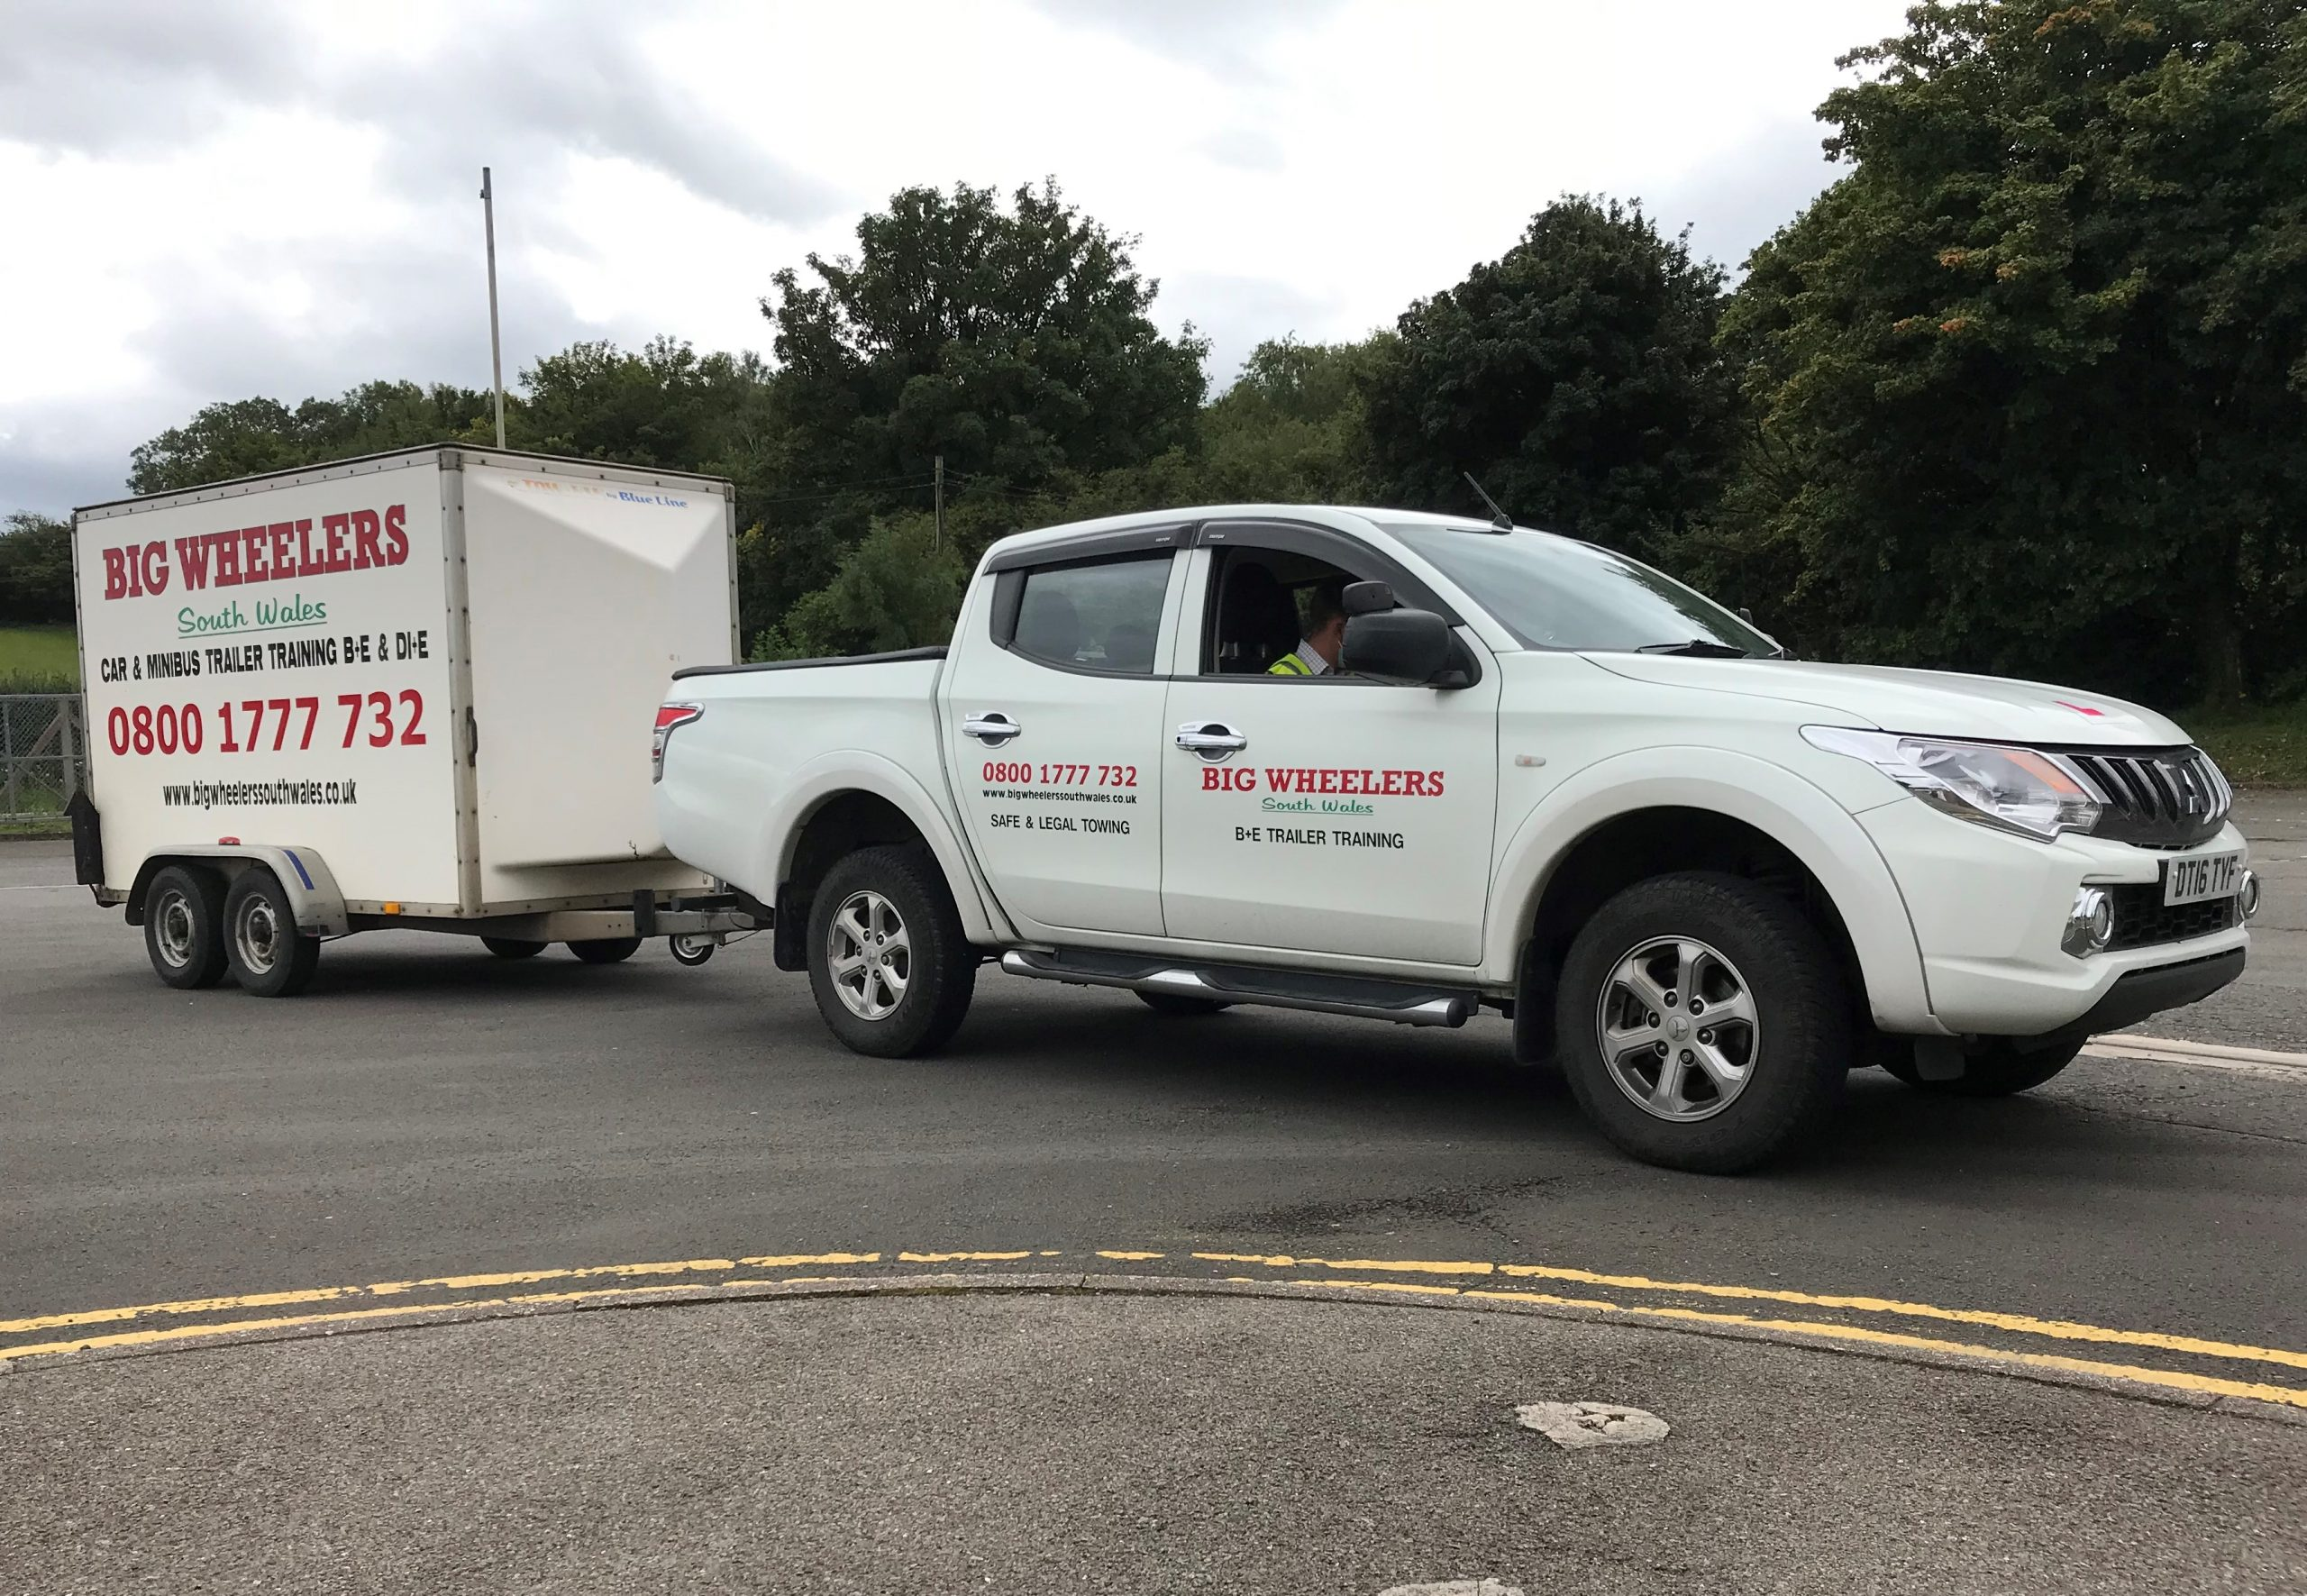 One Day B+E Trailer Training (Using our vehicle and trailer)